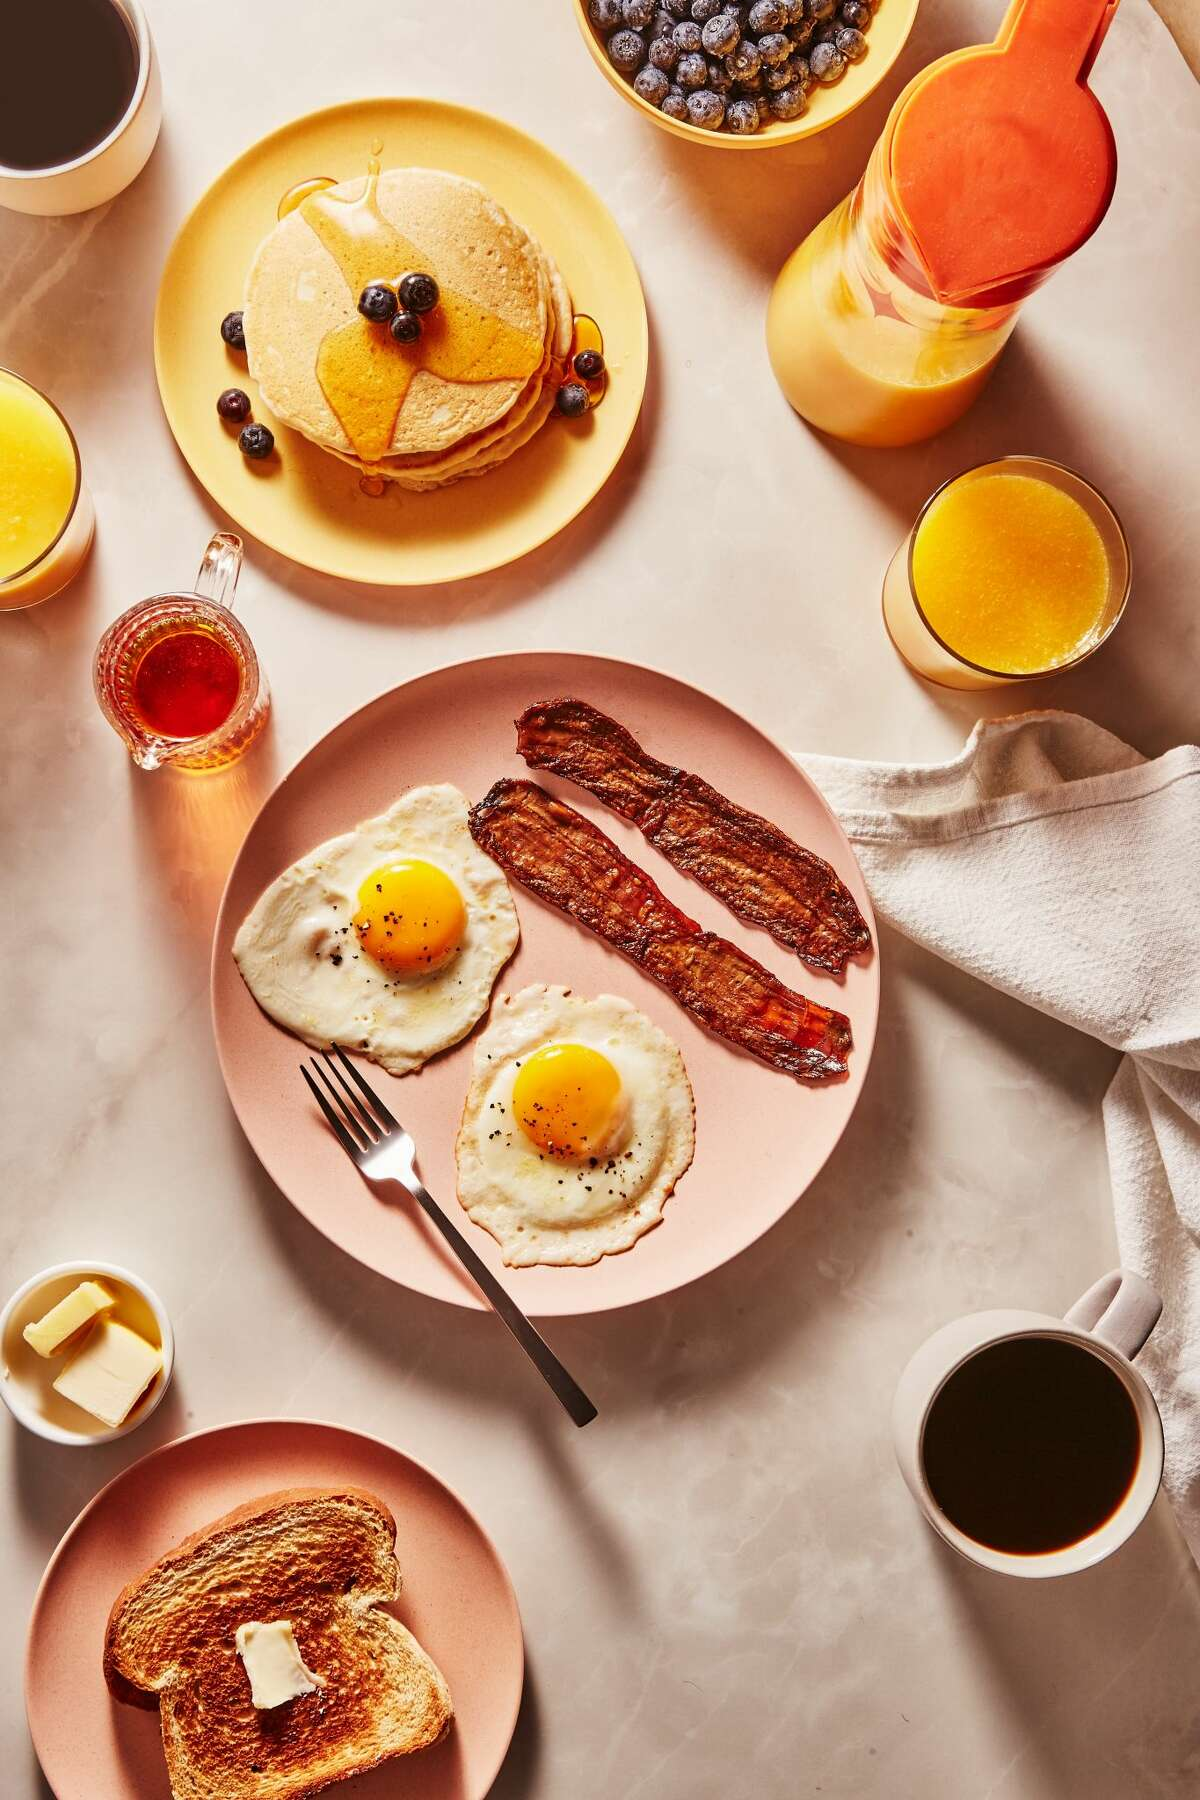 A breakfast scene photographed by Tom Eberhardt-Smith.